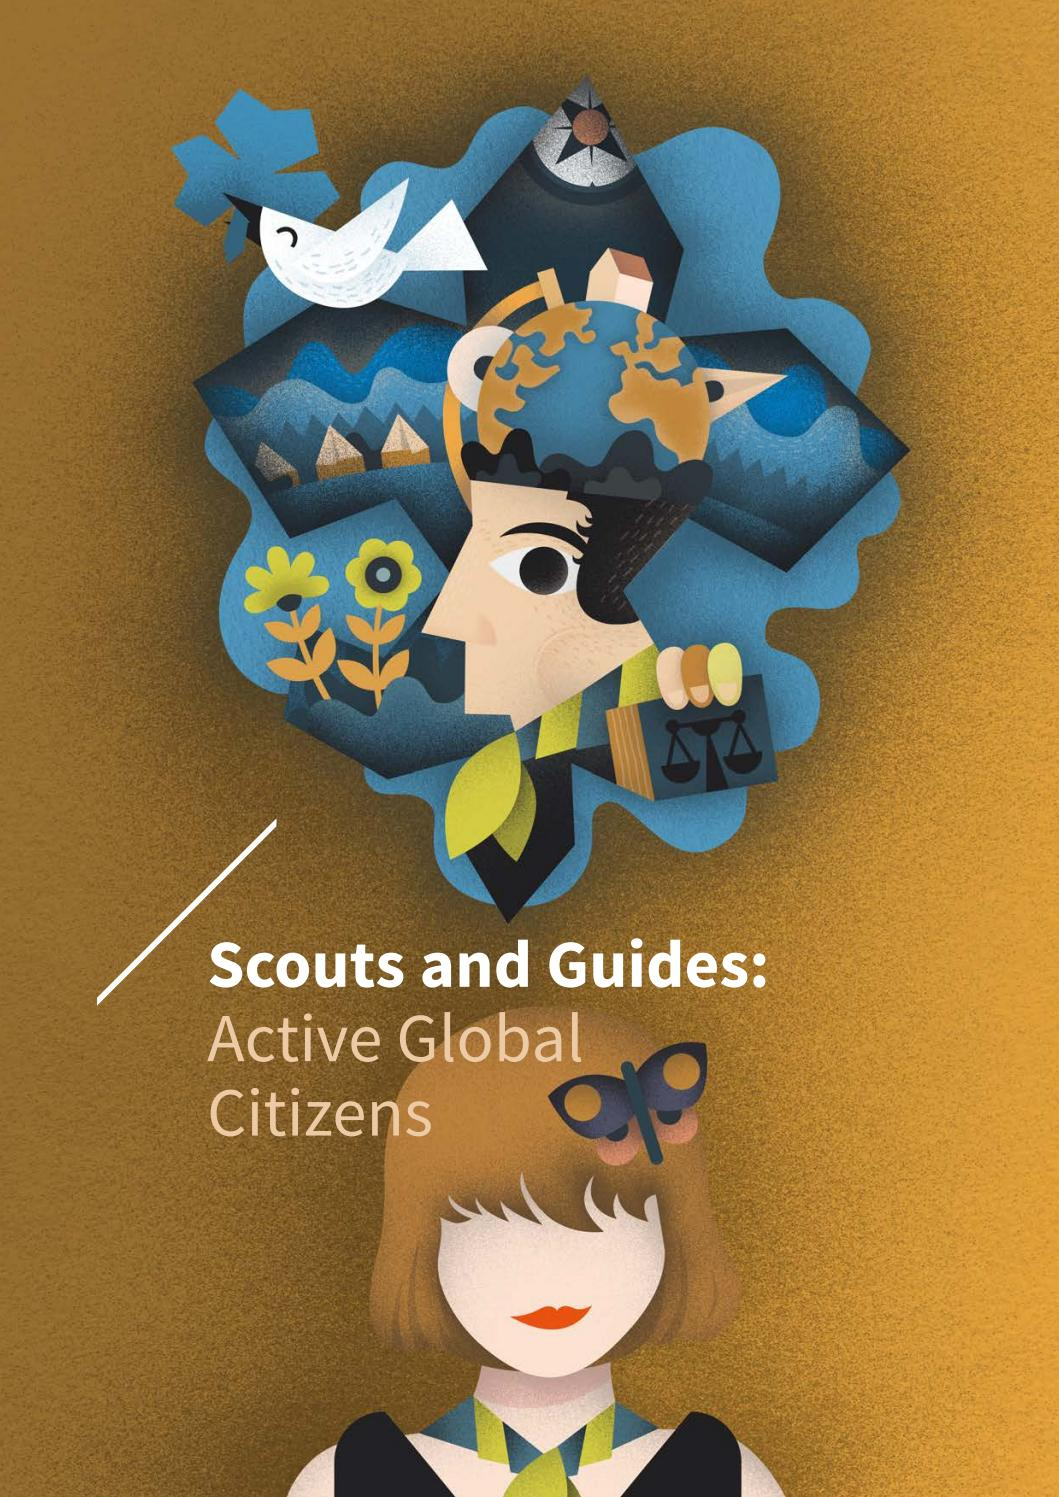 Scouts and Guides Active global citizens by Skavtinje in